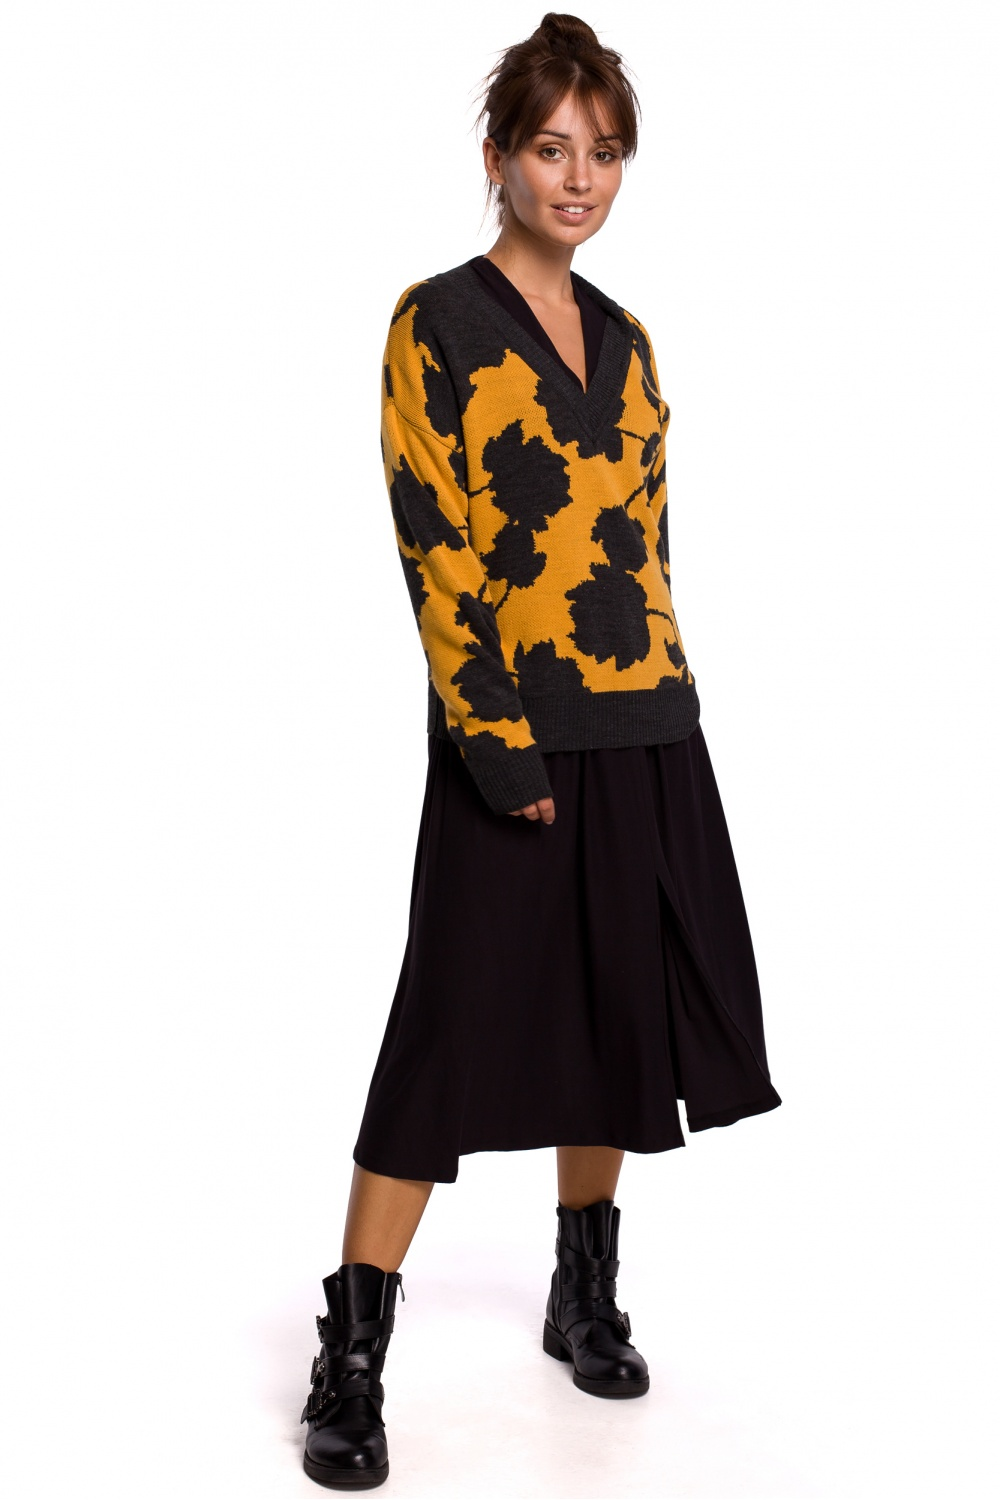 Pulover model 148237 BE Knit